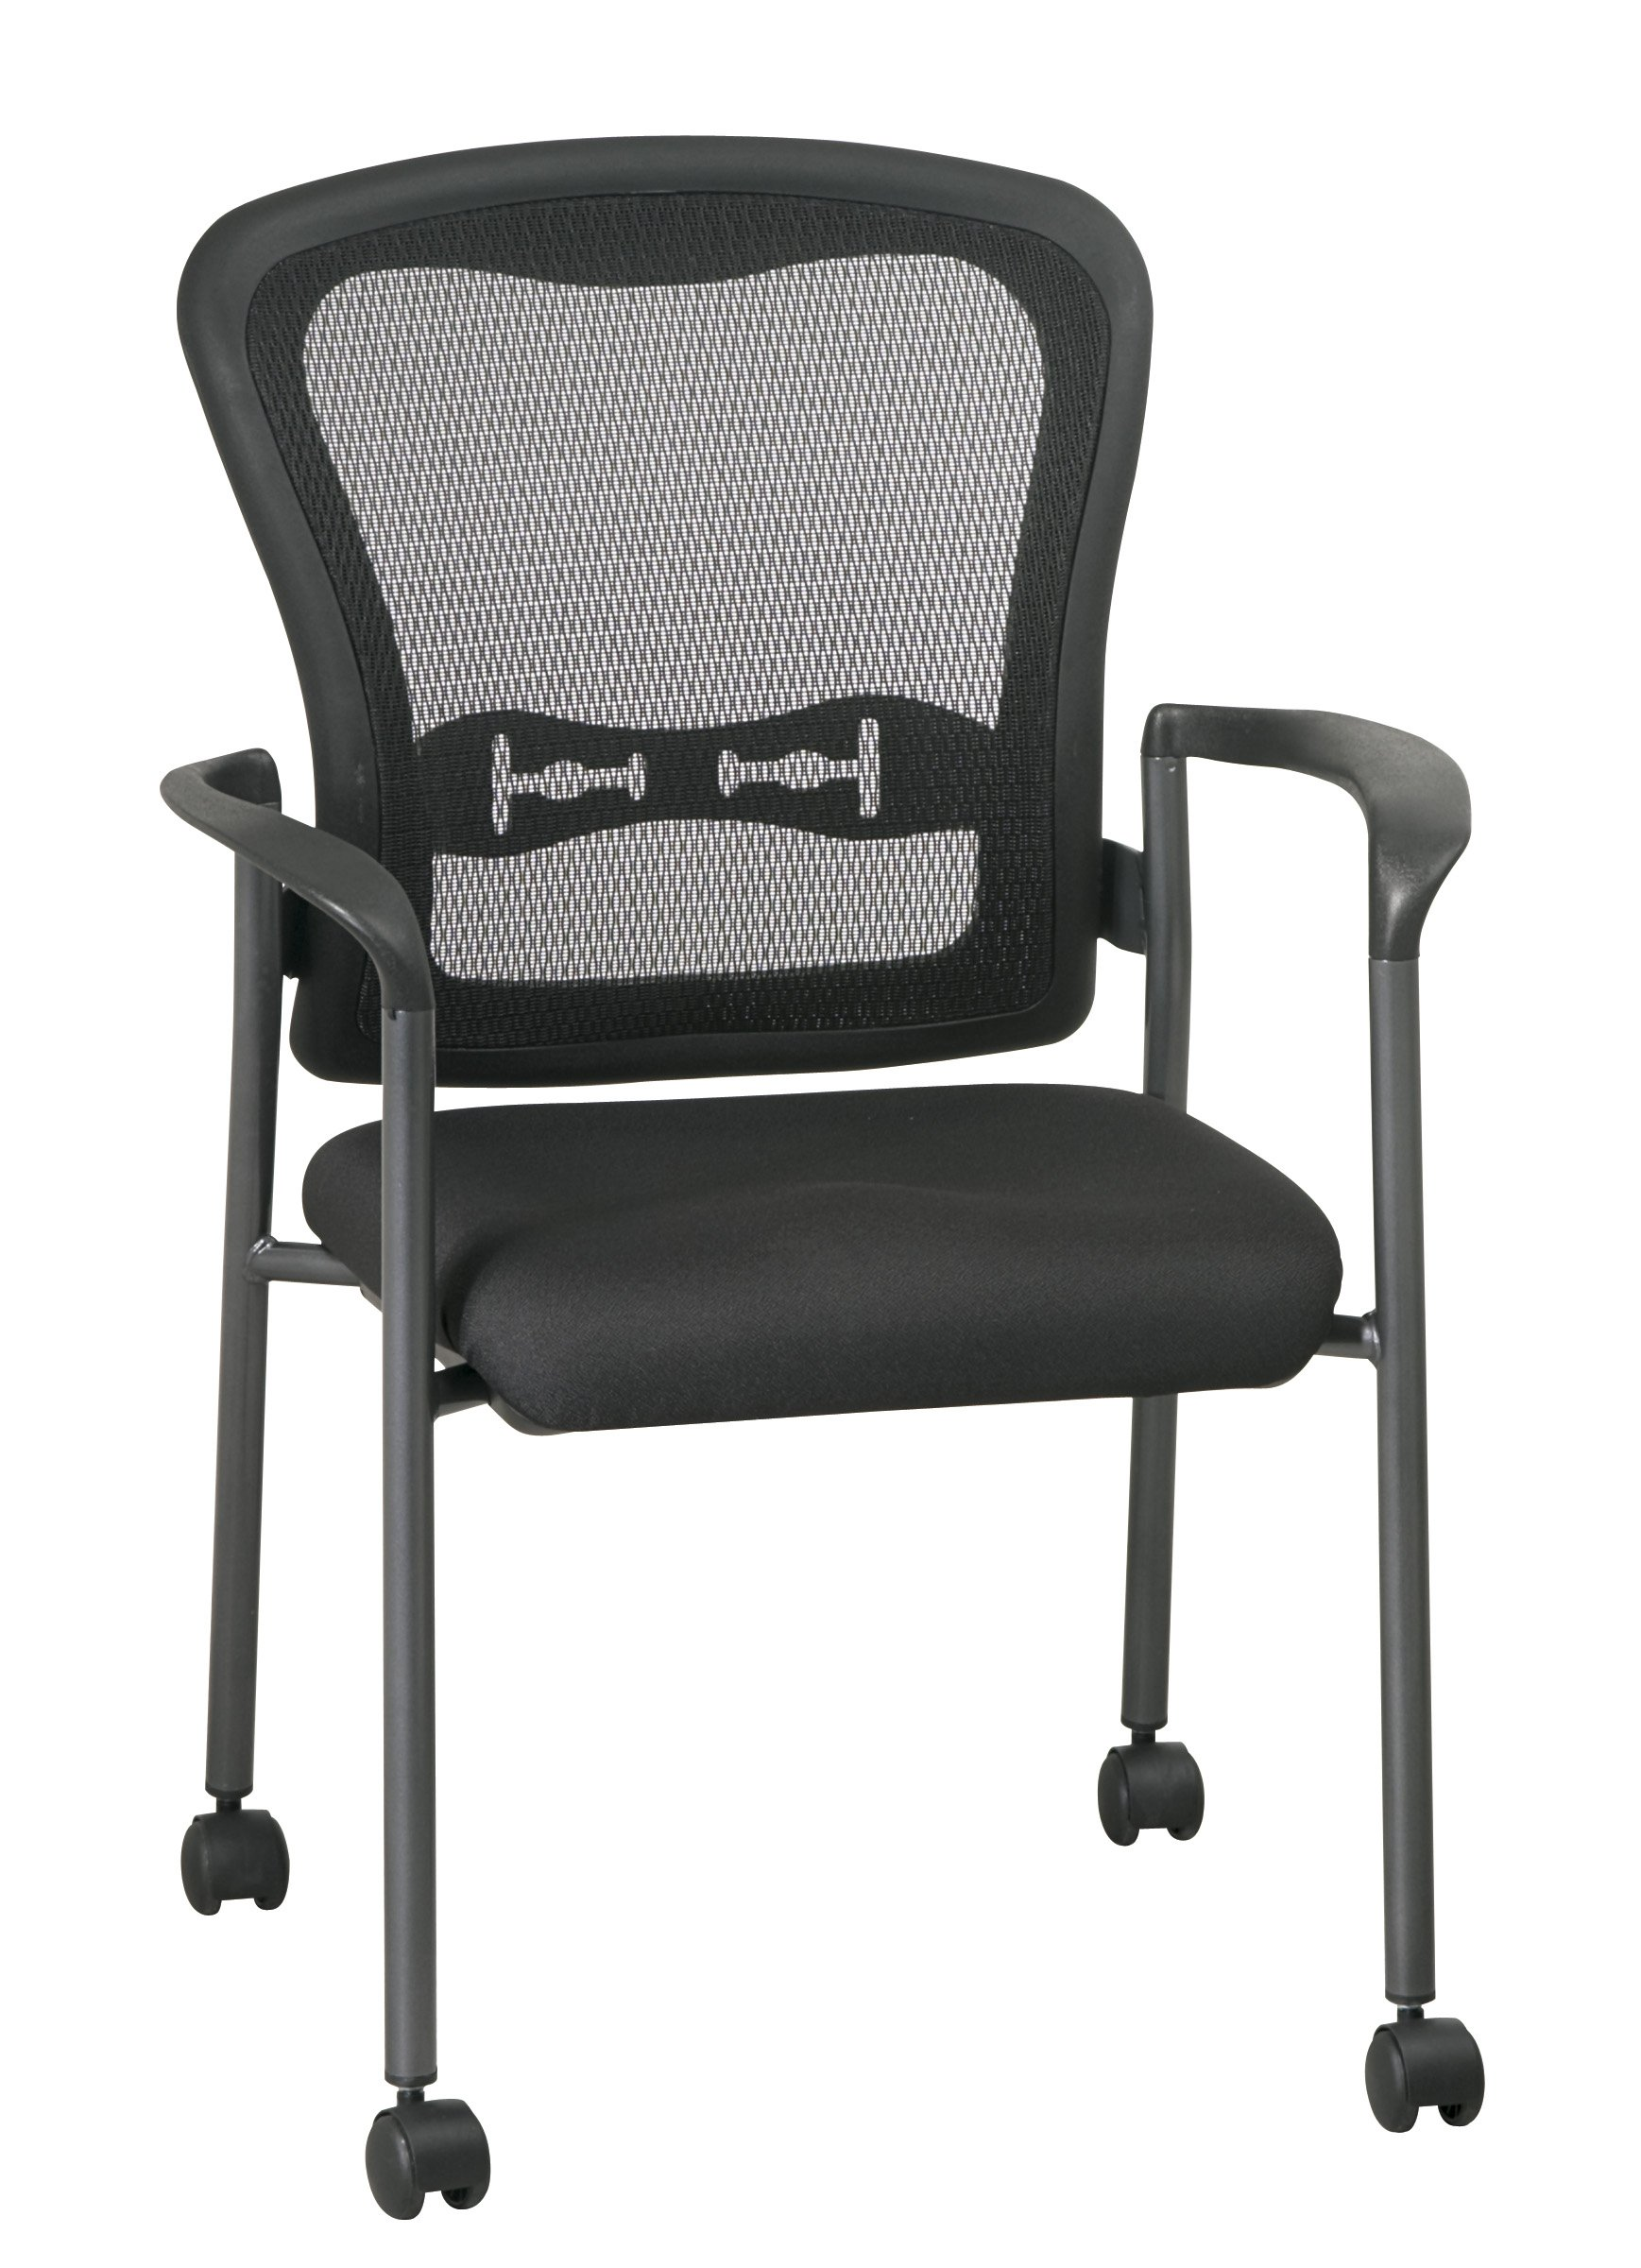 Office Star Breathable ProGrid Back and FreeFlex Coal Seat with Arms and Lumbar Supprt Stacking Chair with Casters, Titanium Finish